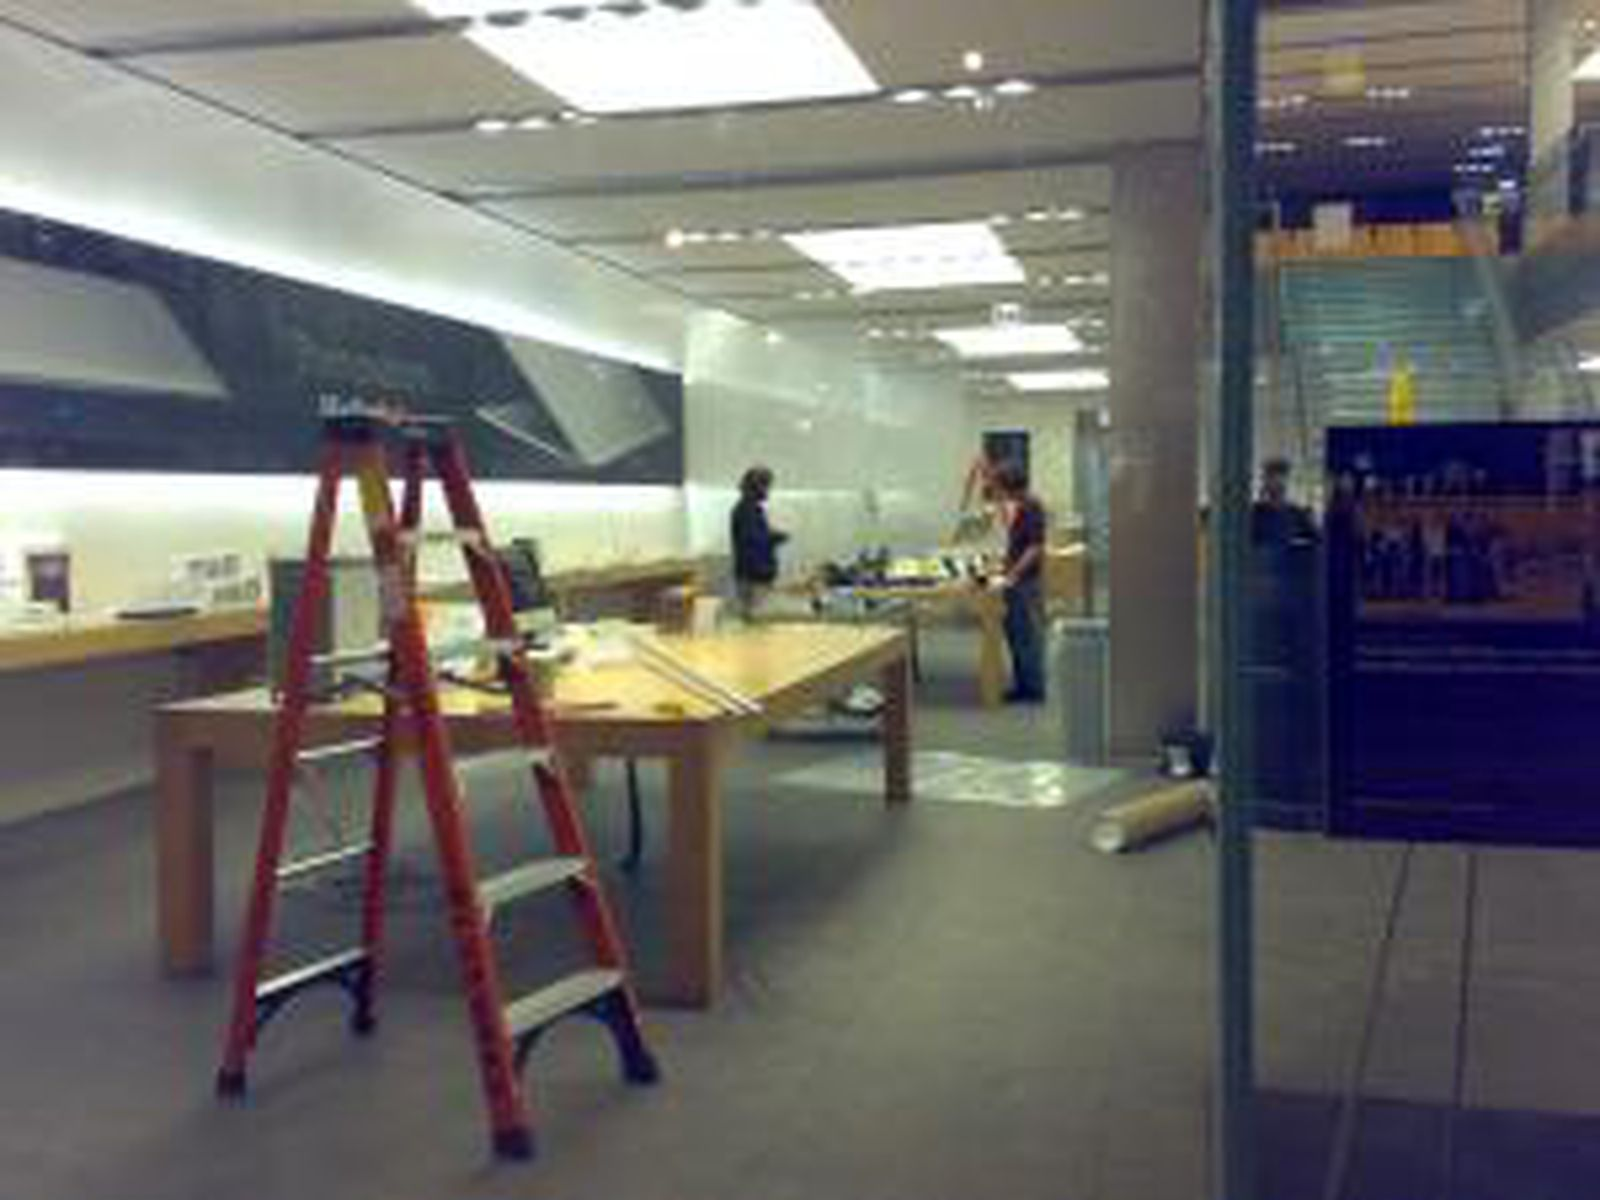 MacBook Airs On Display at Apple Stores, Disassembly ...